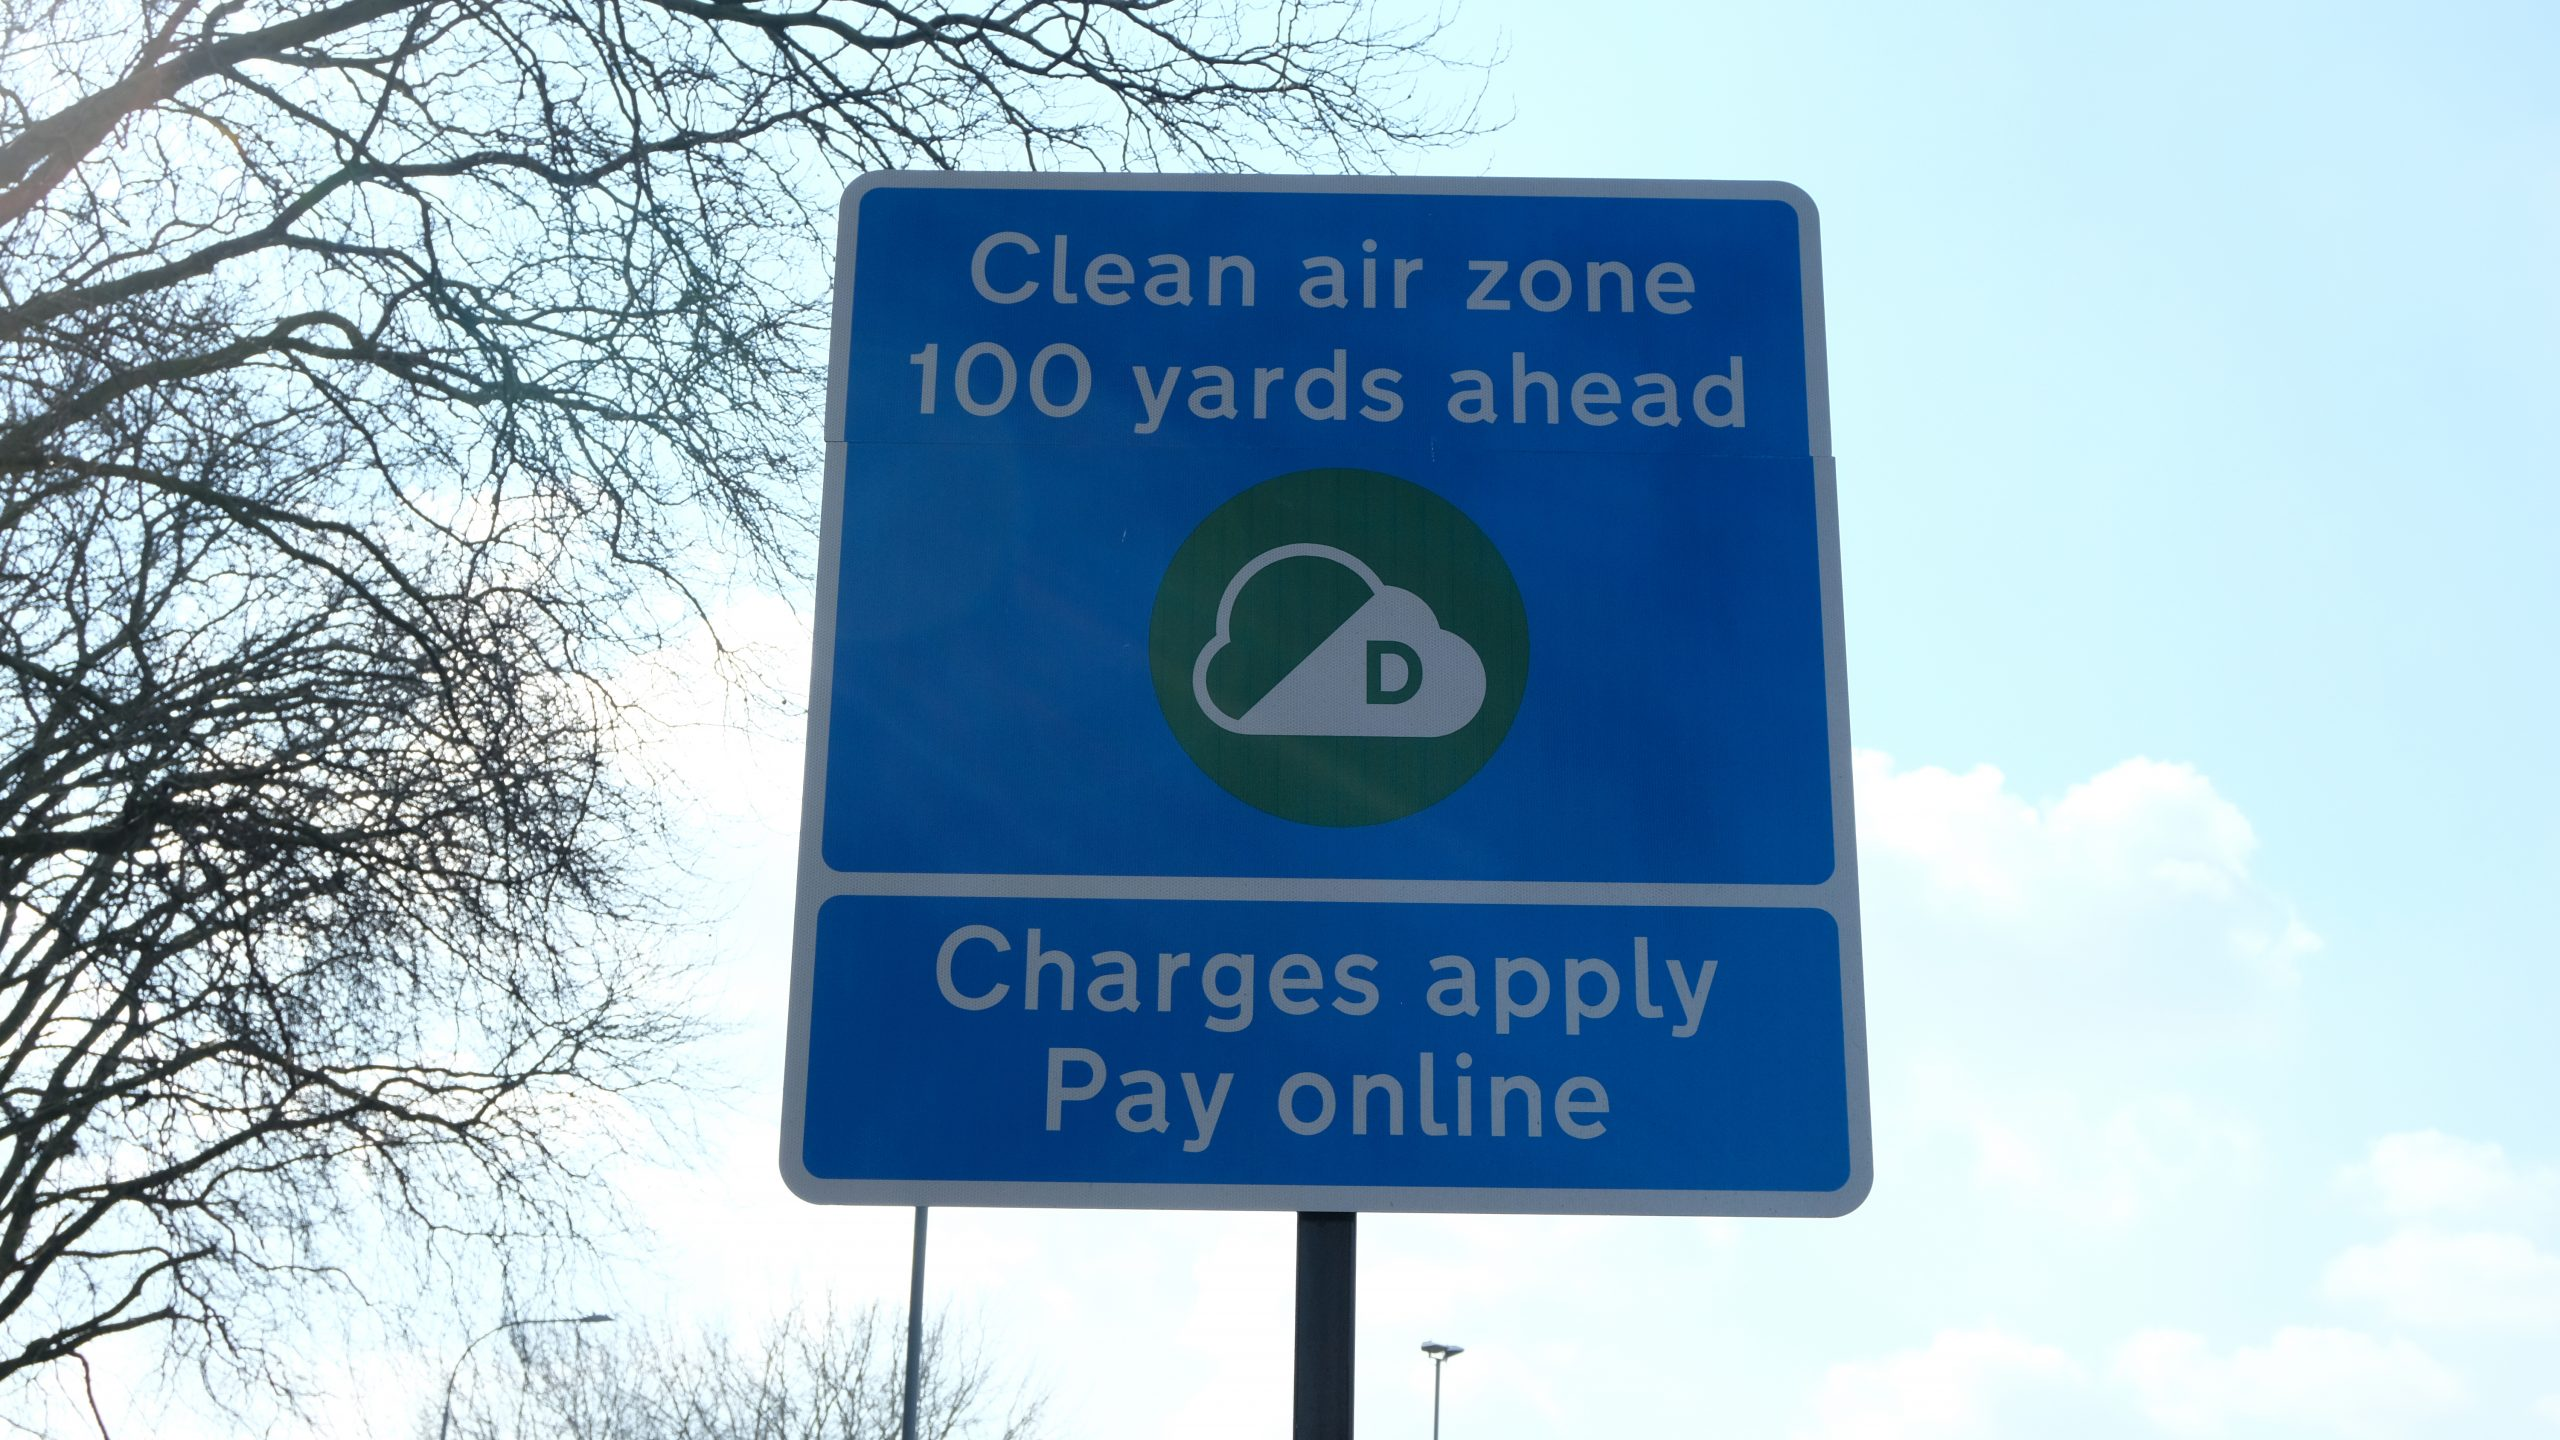 Clean air zone sign in London